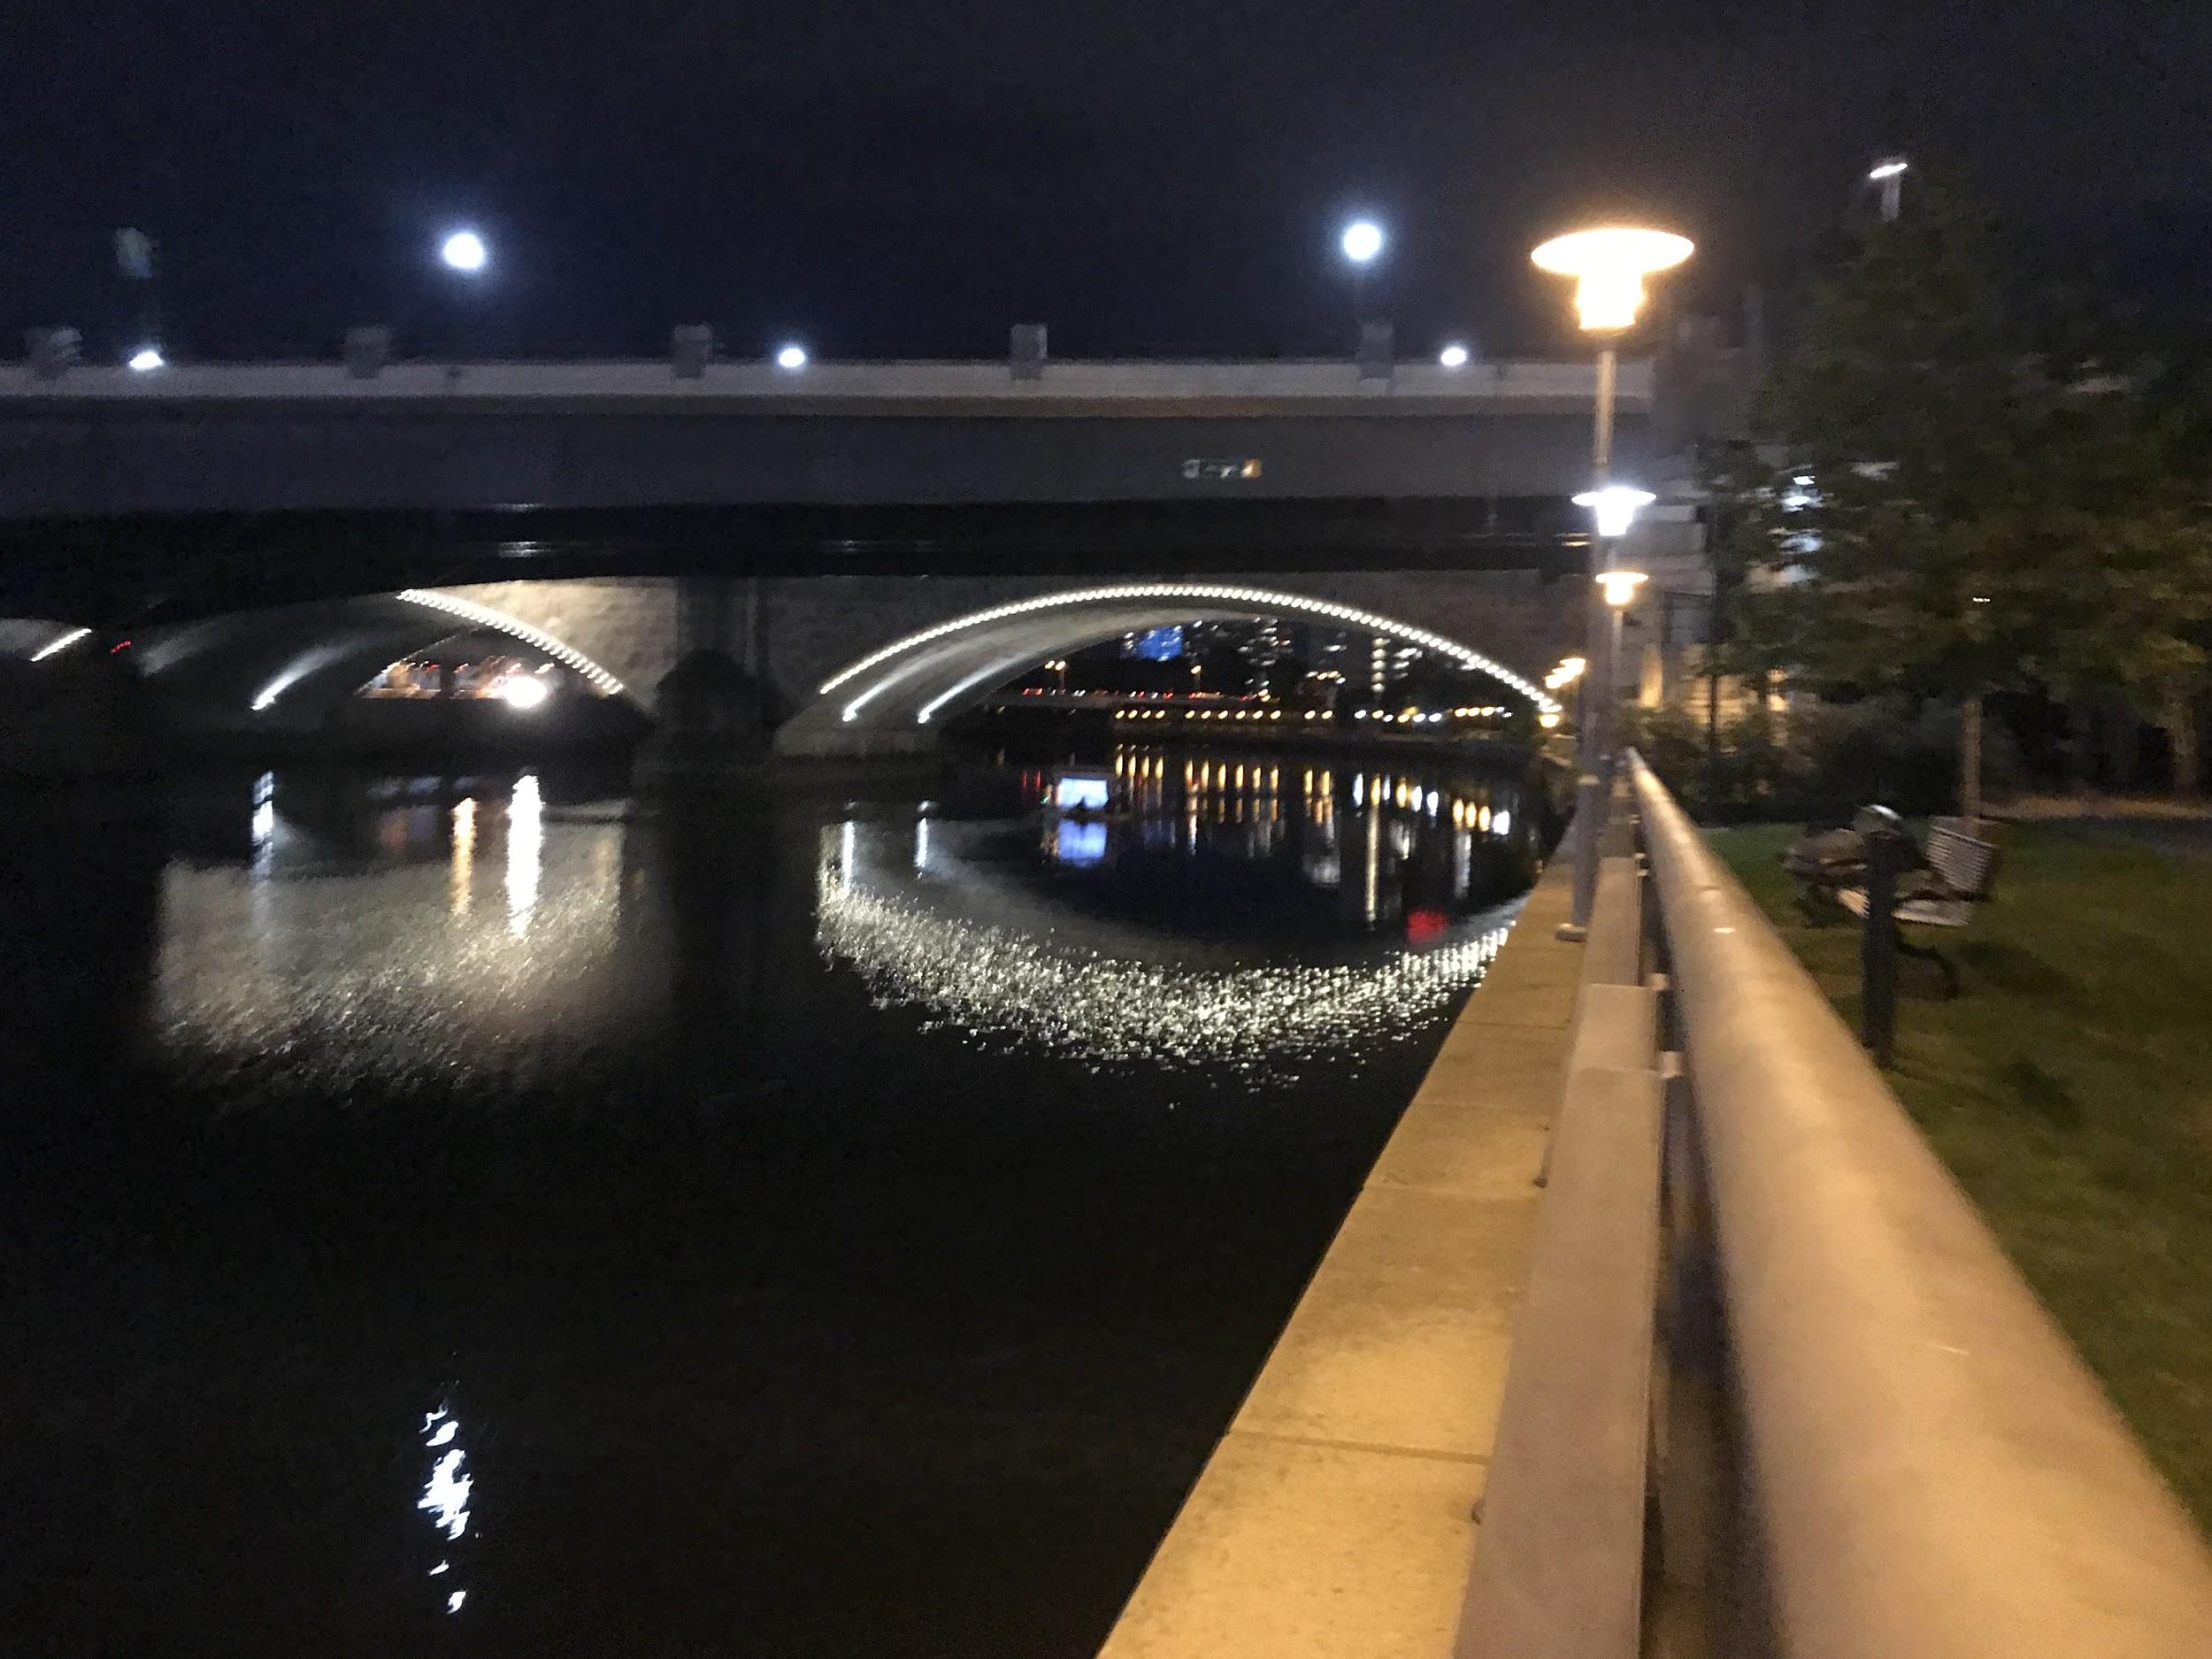 Schuylkill River at night